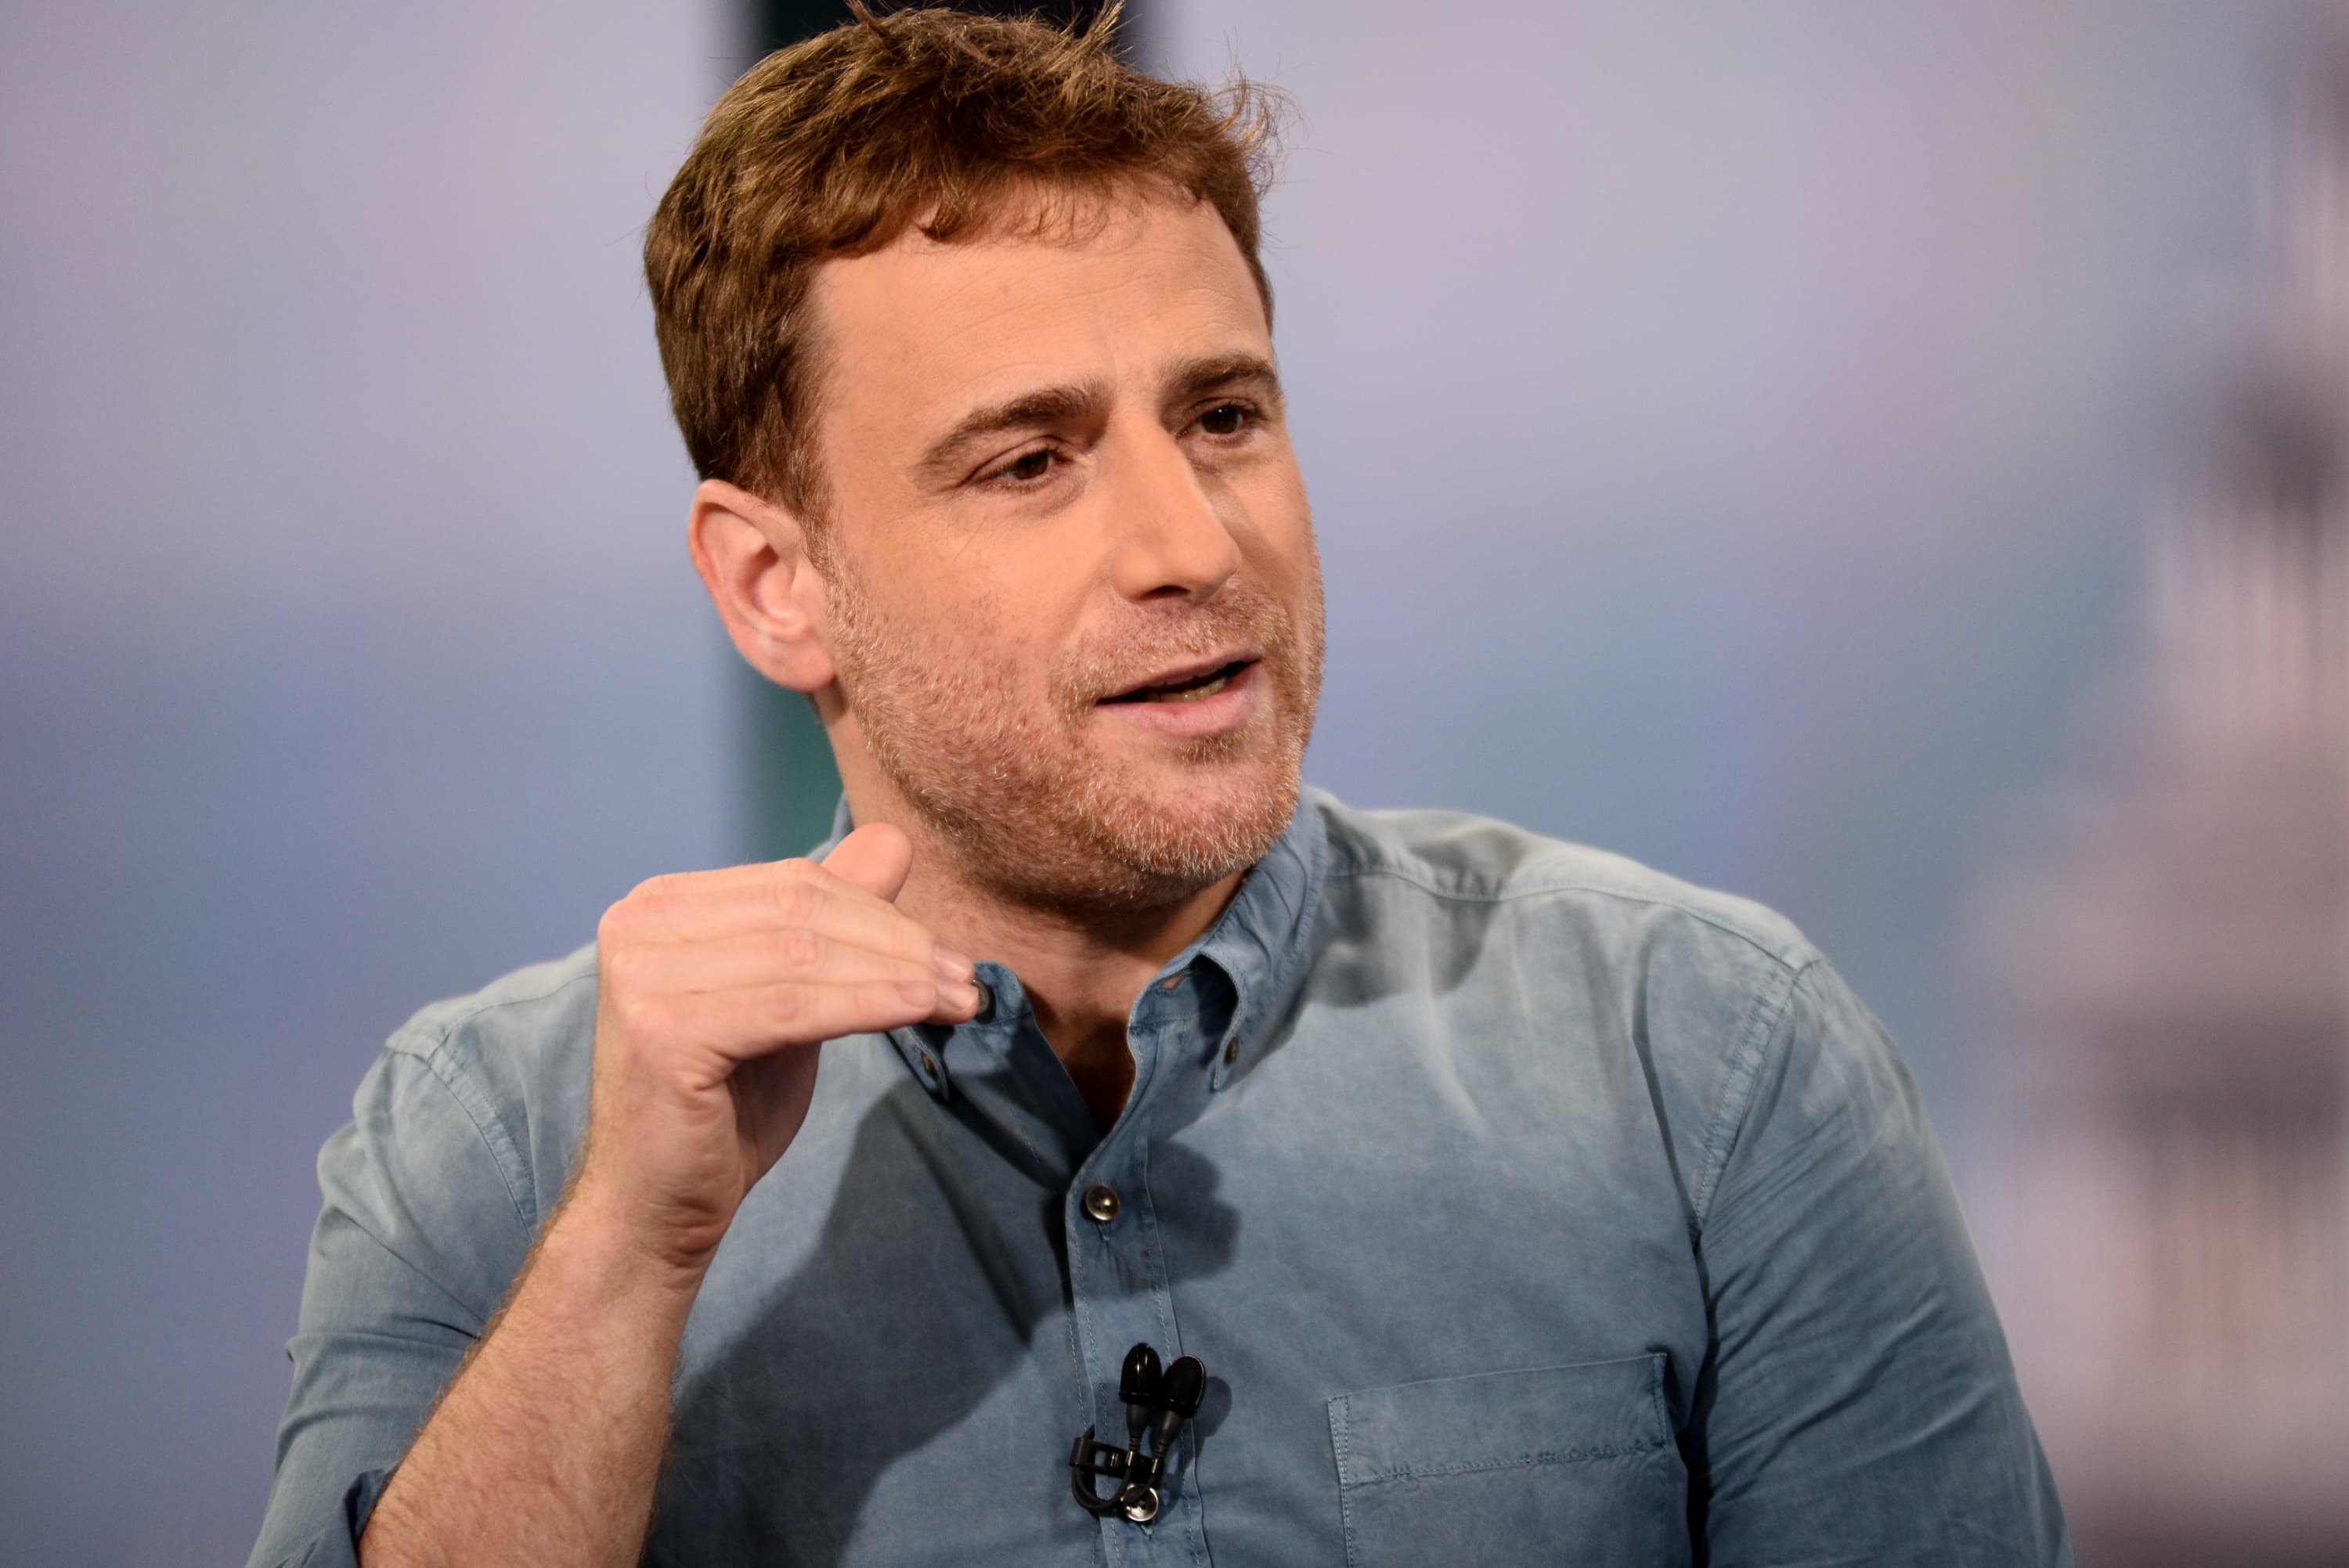 Slack CEO says the company will use its $800 million cash pile to focus on growth